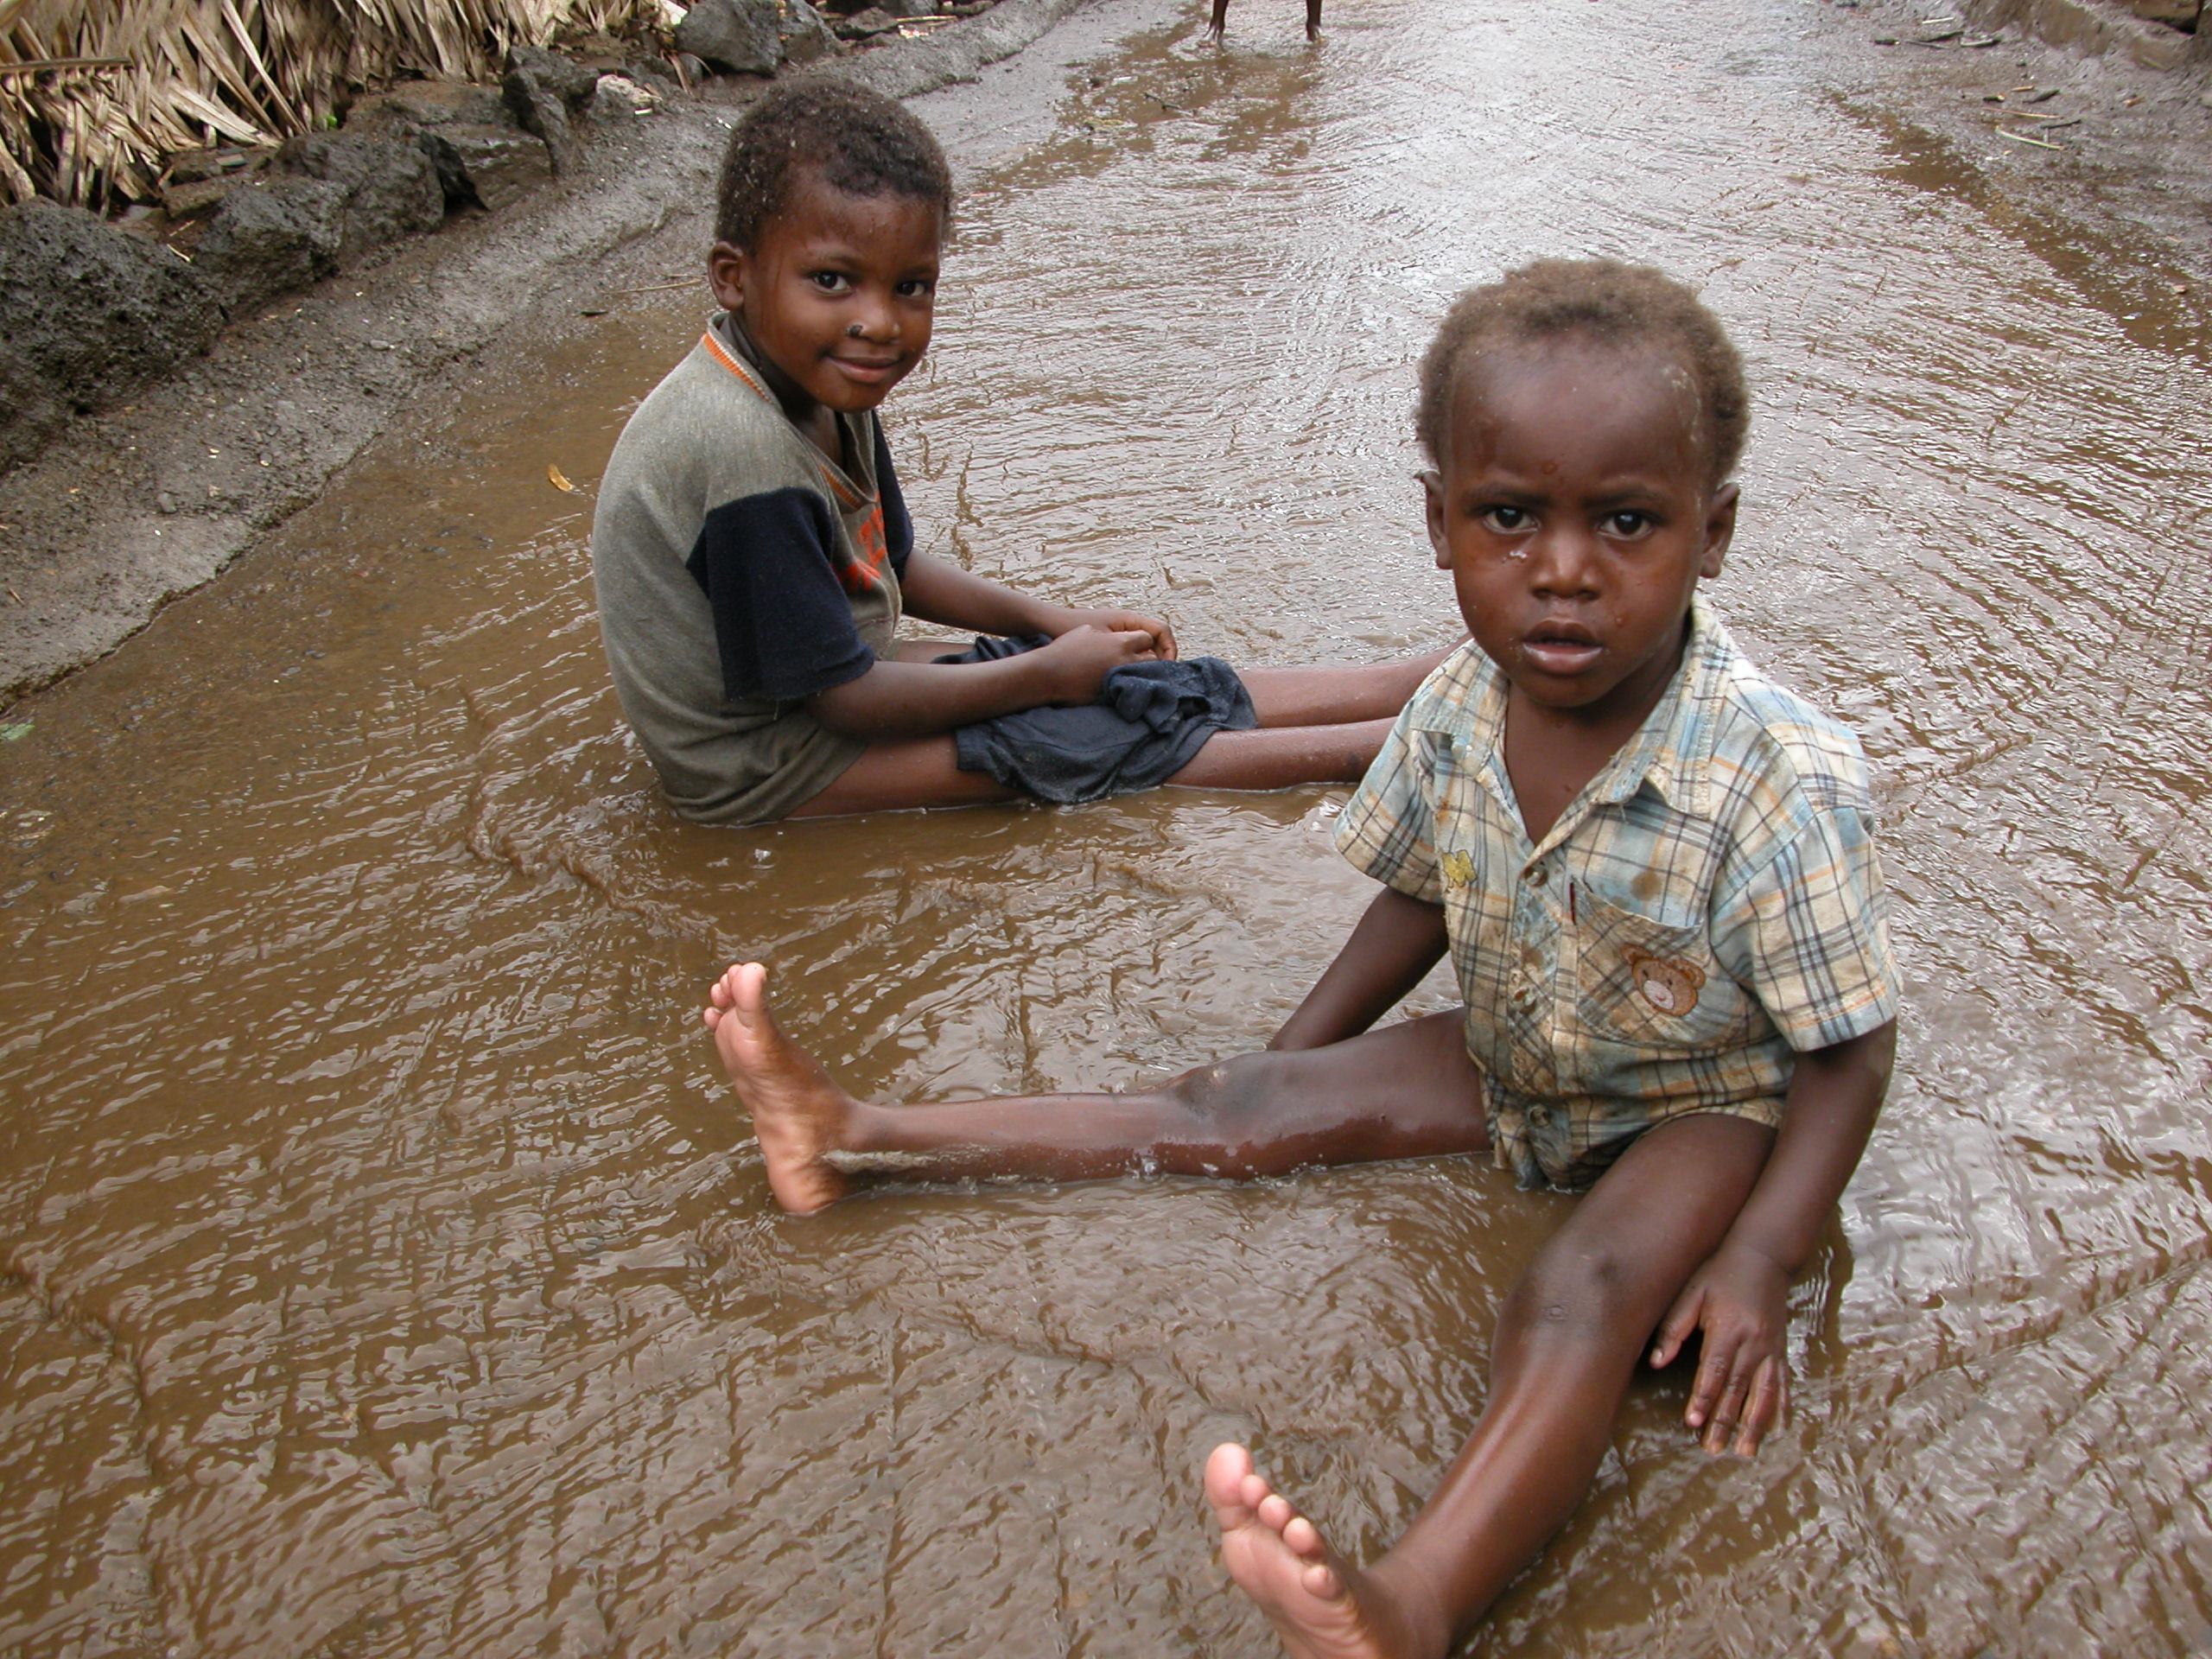 Children play in the rain on streets of Barakani, on the Comoros island of Anjouan